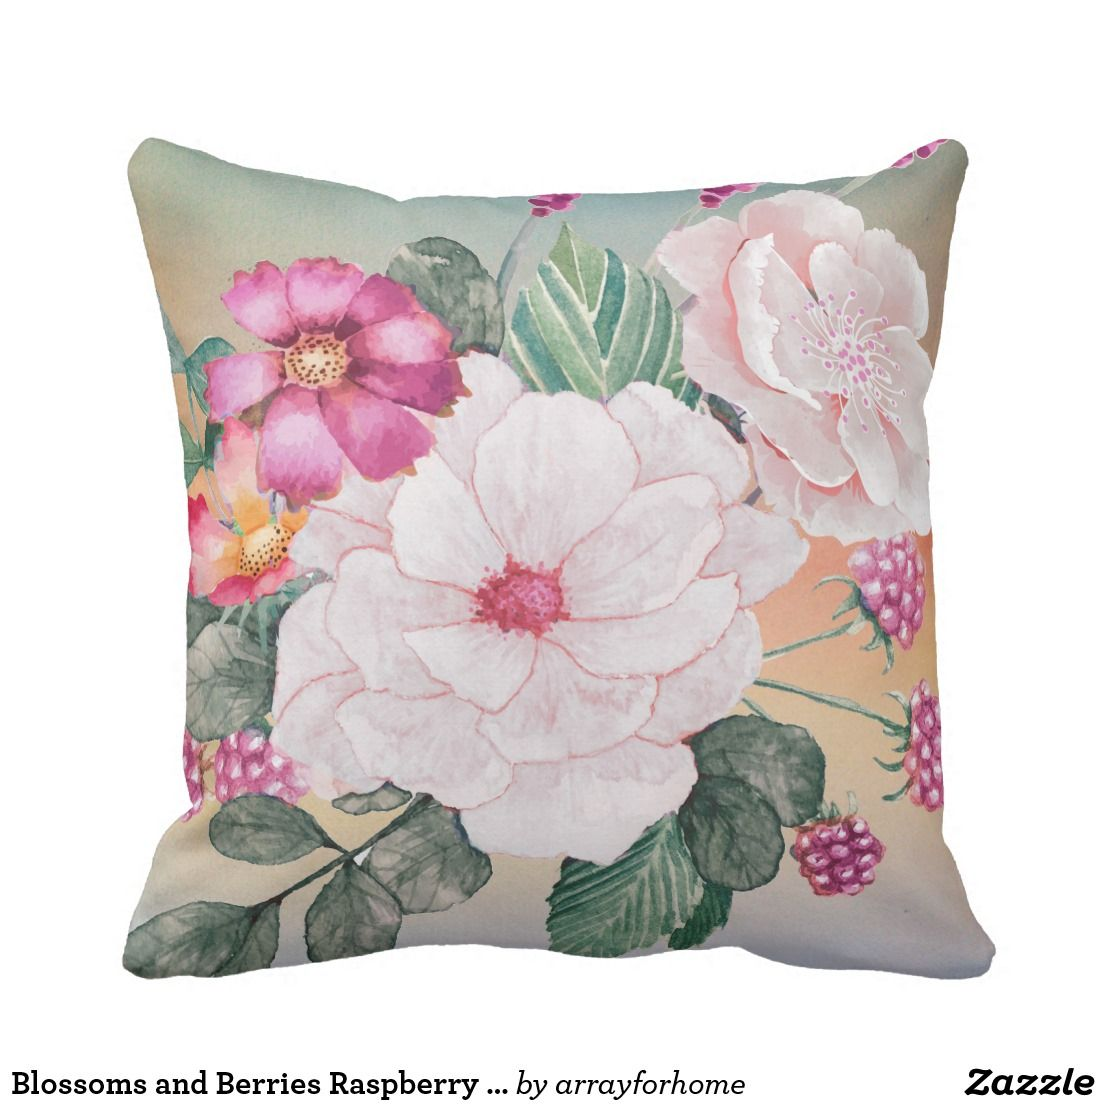 Blossoms And Berries Raspberry Id476 Throw Pillow Zazzle Com Throw Pillows Pillows Pillows Flowers